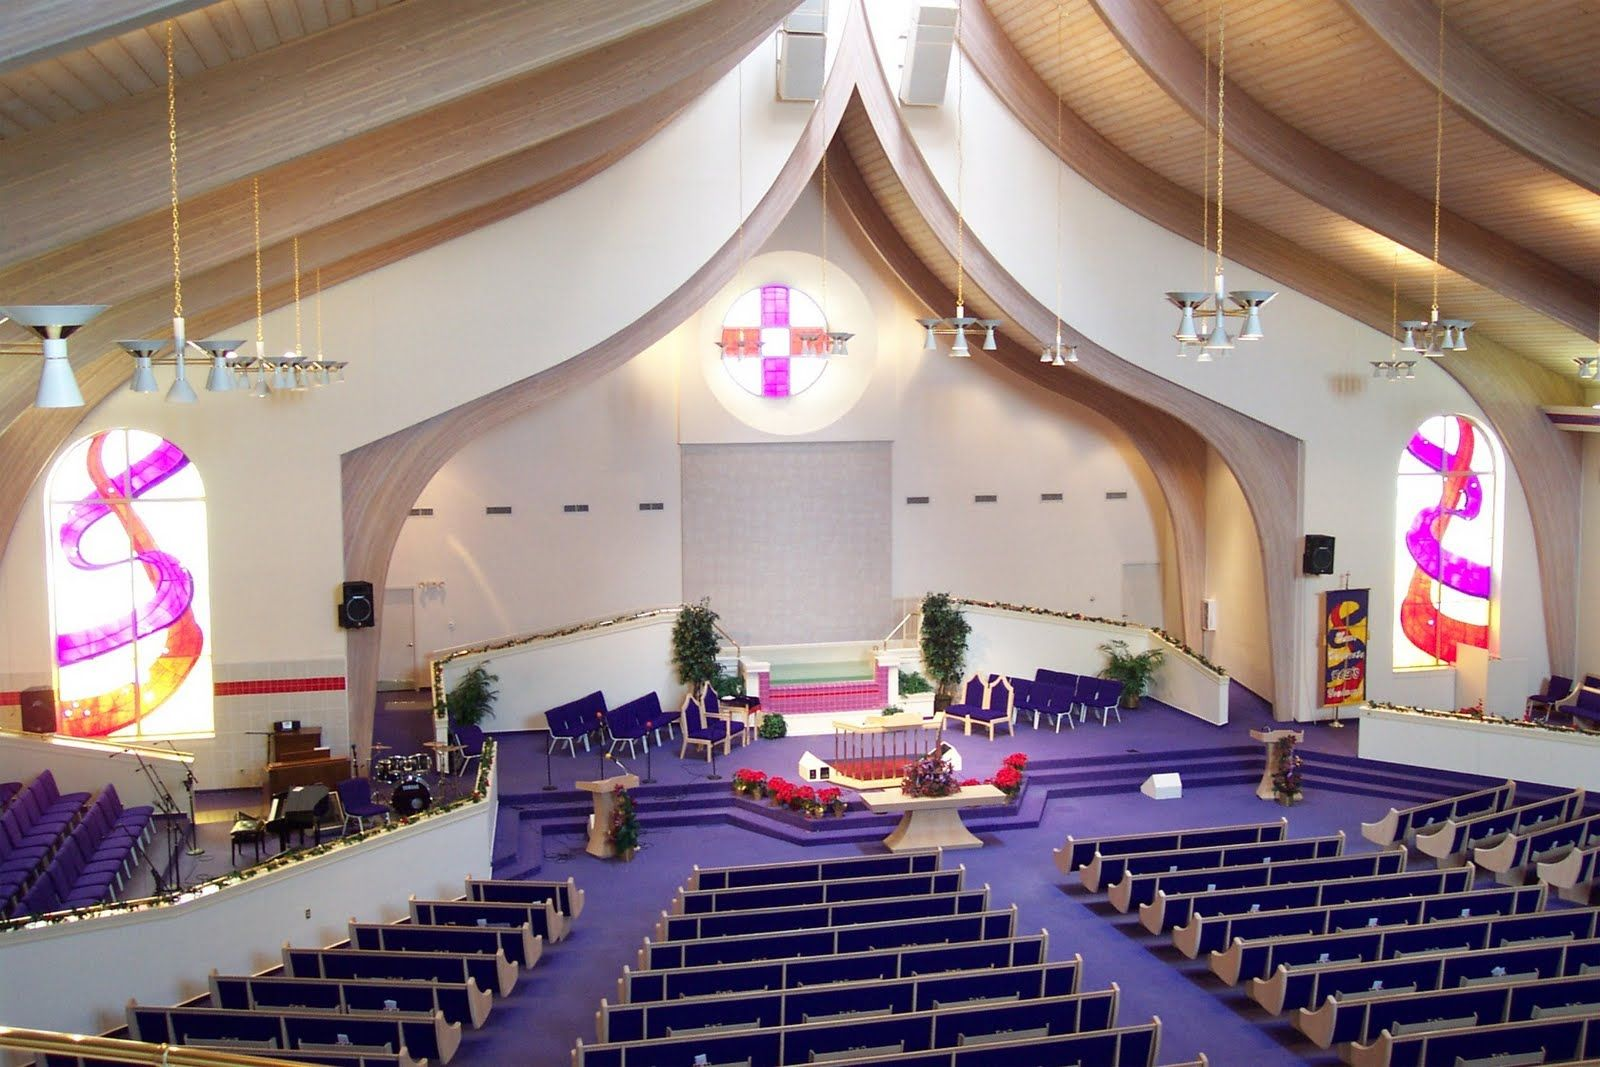 Church Interior Design Ideas modern church interior architecture google search religious buildings pinterest modern grace omalley and window 1000 Images About Church On Pinterest Color Schemes House Exteriors And Church Nursery